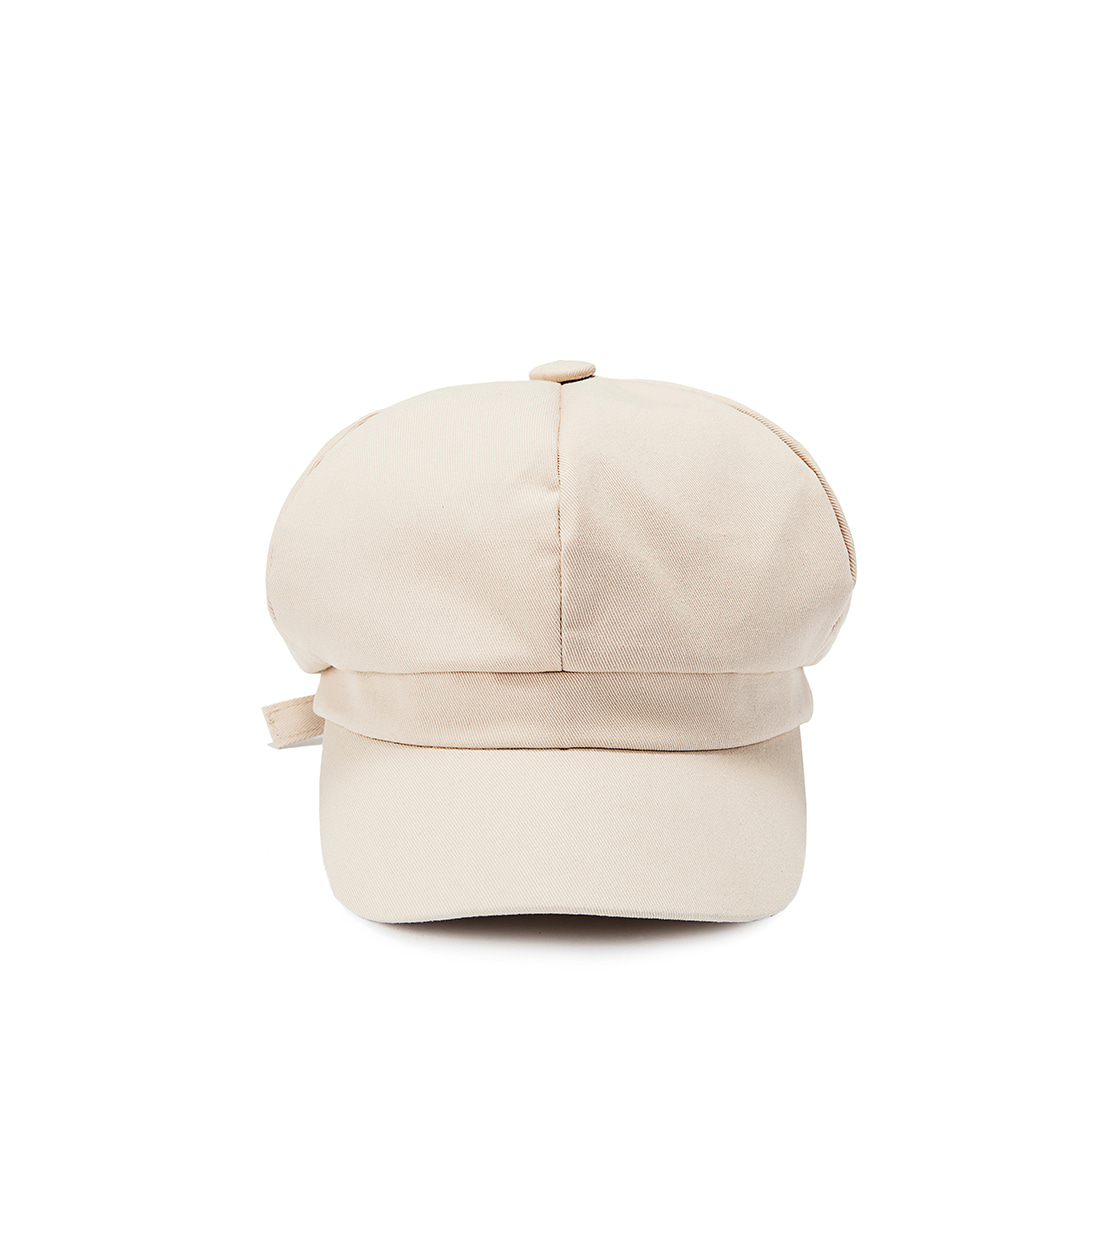 boni newsboy cap - cotton light beige